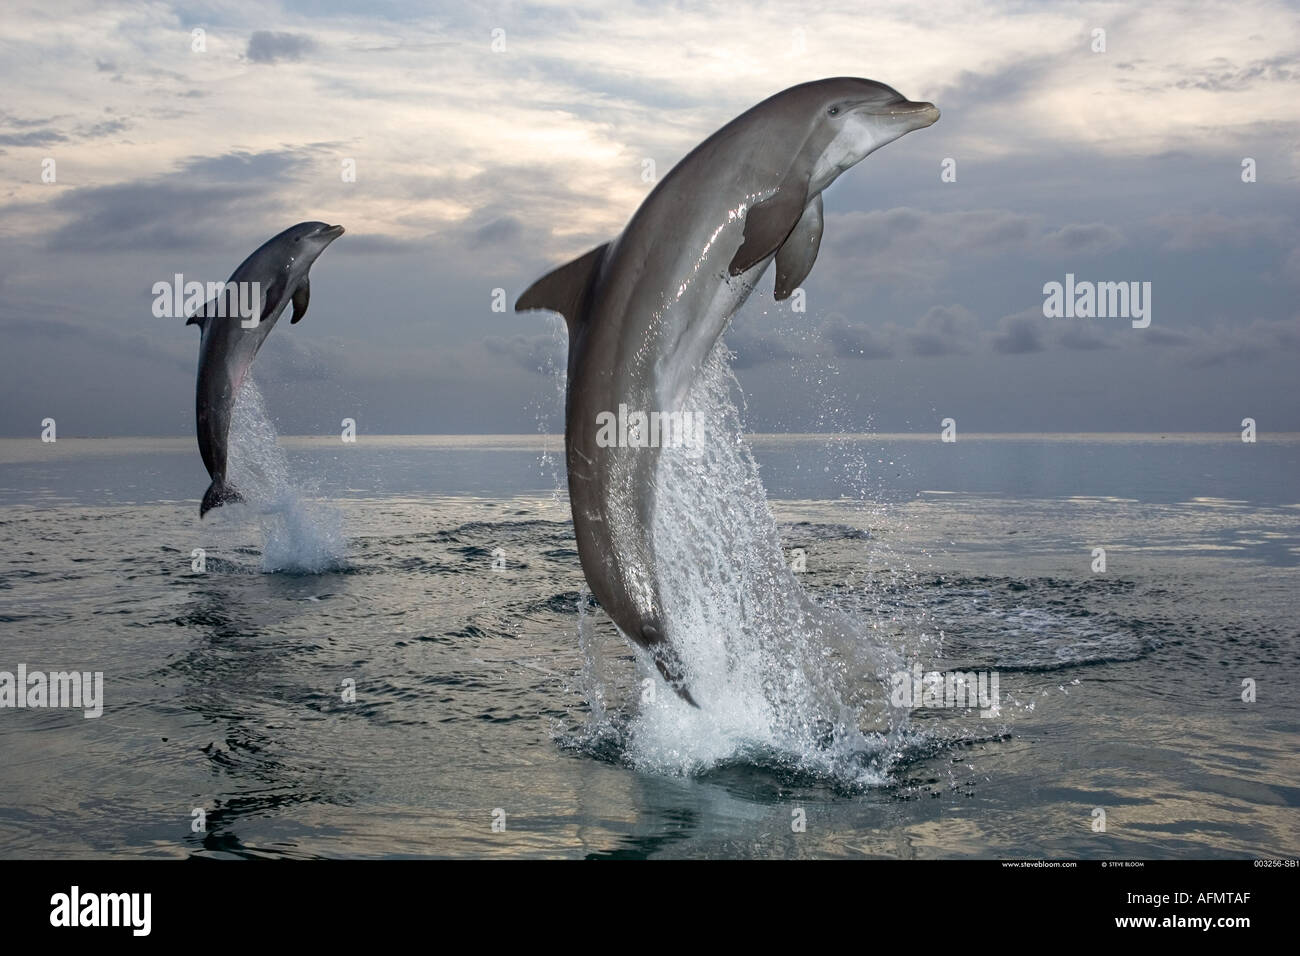 Bottlenose dolphins leaping out of the water Honduras - Stock Image